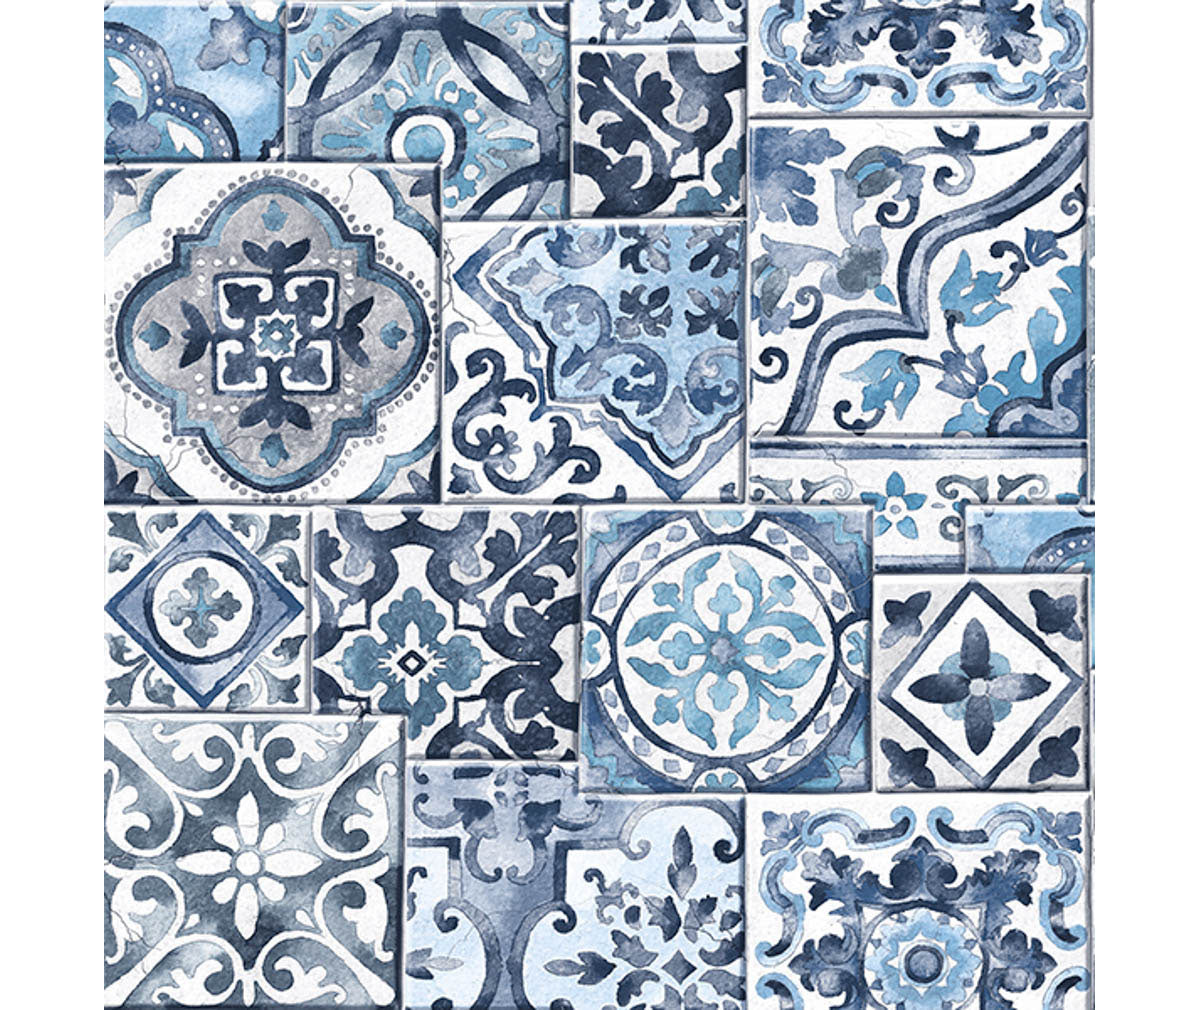 Marrakesh Tiles Blue Mosaic Wallpaper available at Barrydowne Paint